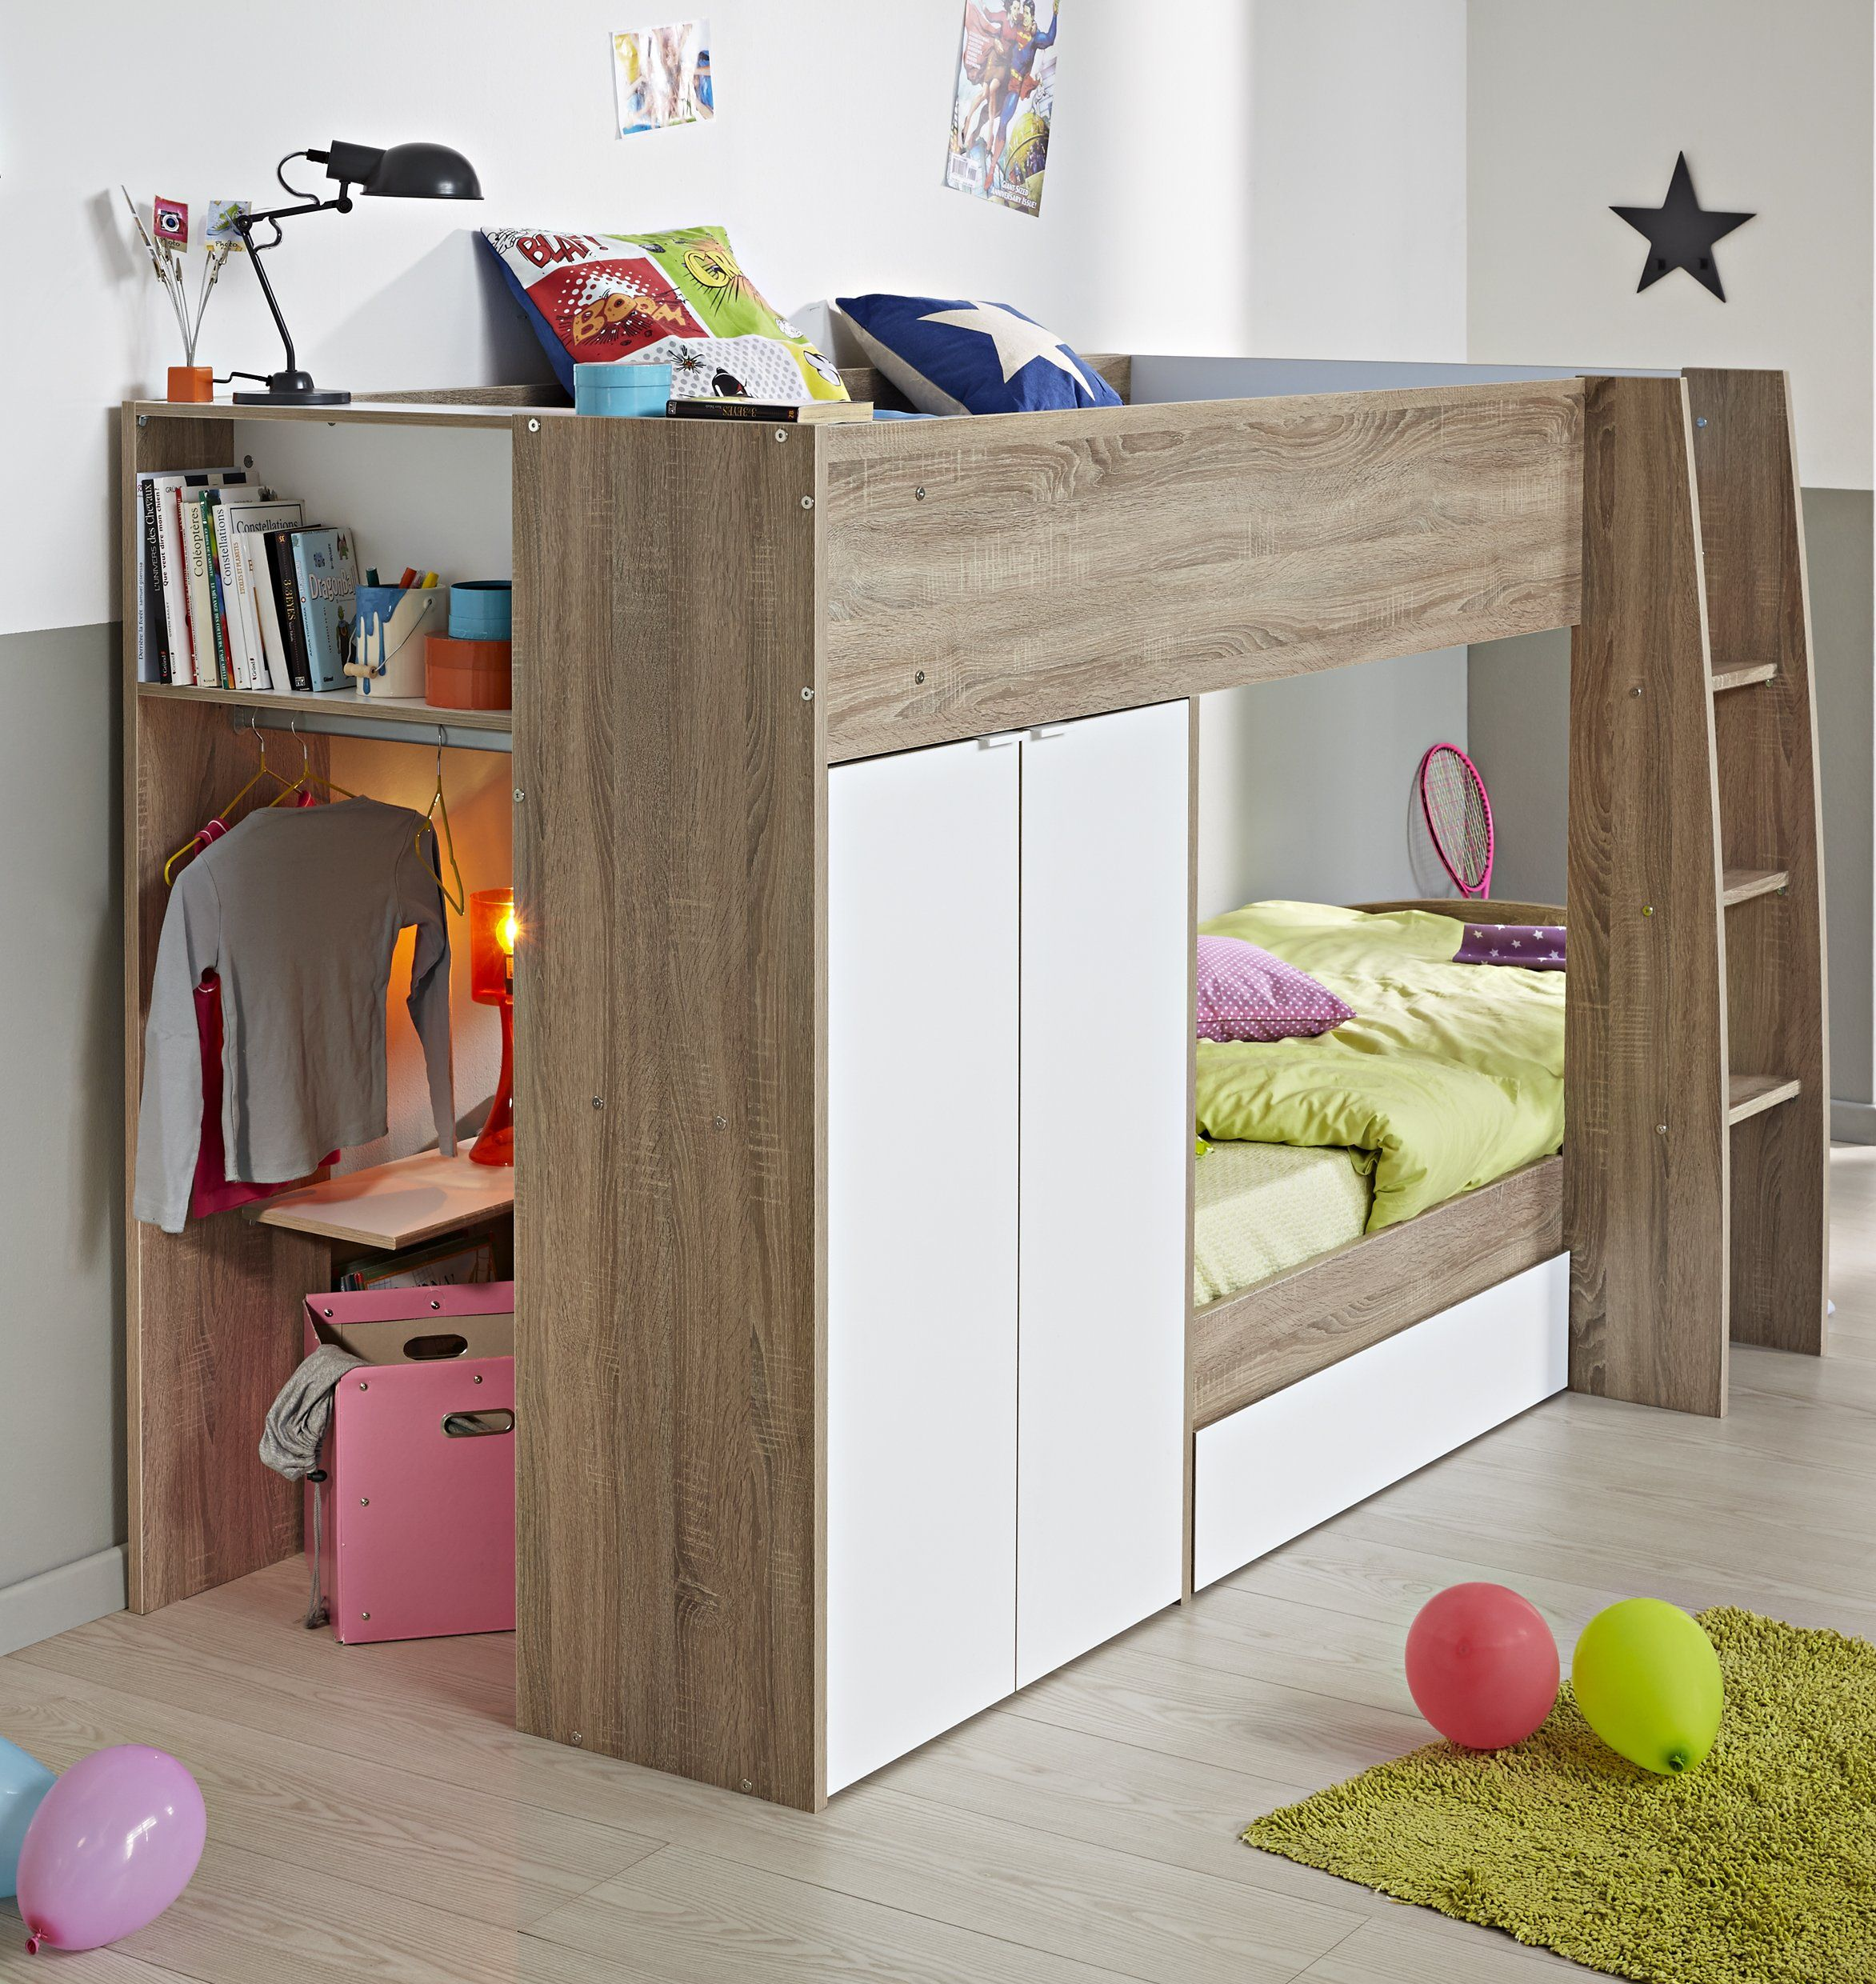 Pictures for kids bedrooms cool kids bedroom bedrooms for Bunk bed bedroom designs